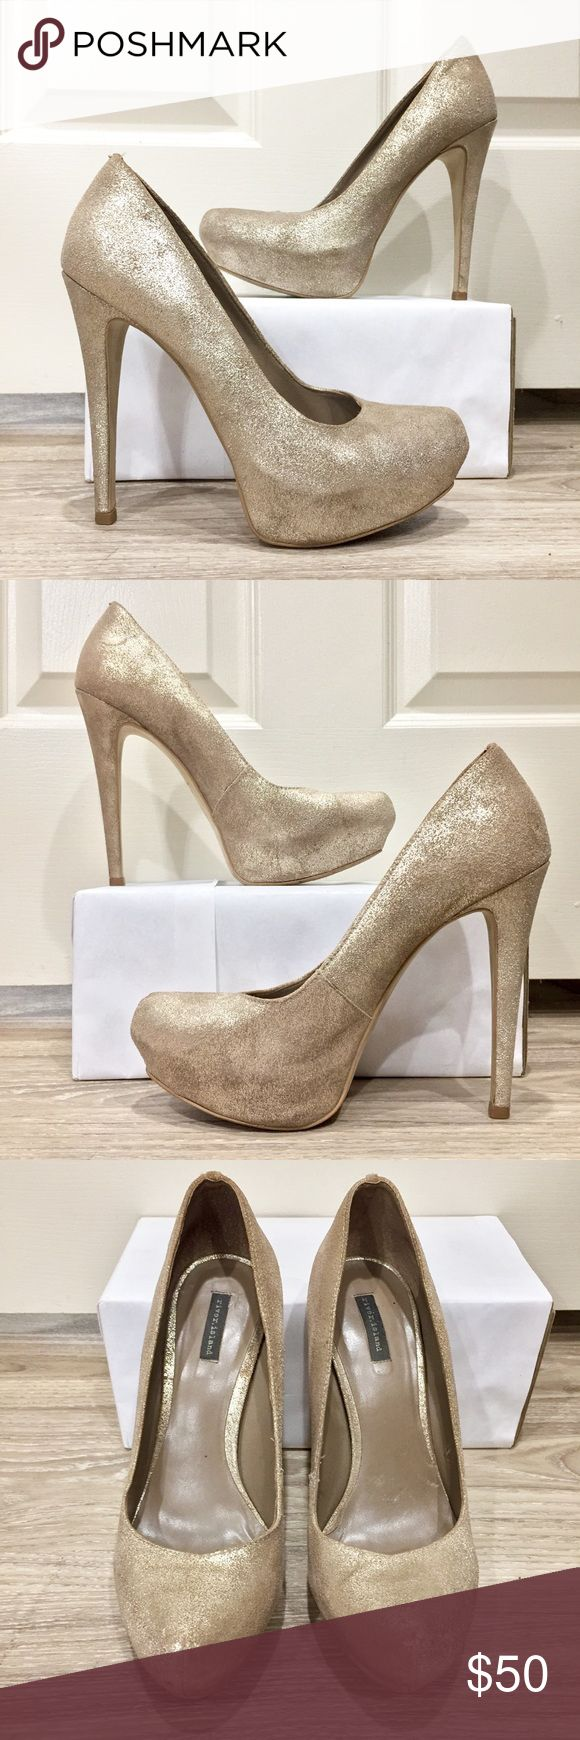 "River Island metallic court Shoe Purchased in Dubai and worn ~5 times, amazing Shoe, and absurdly comfortable for dancing! Color best described as metallic sand, can compliment gold OR silver jewelry. 5"" heel, 1"" platform. Size 40 is US 9. Price firm unless bundled. River Island Shoes Heels"